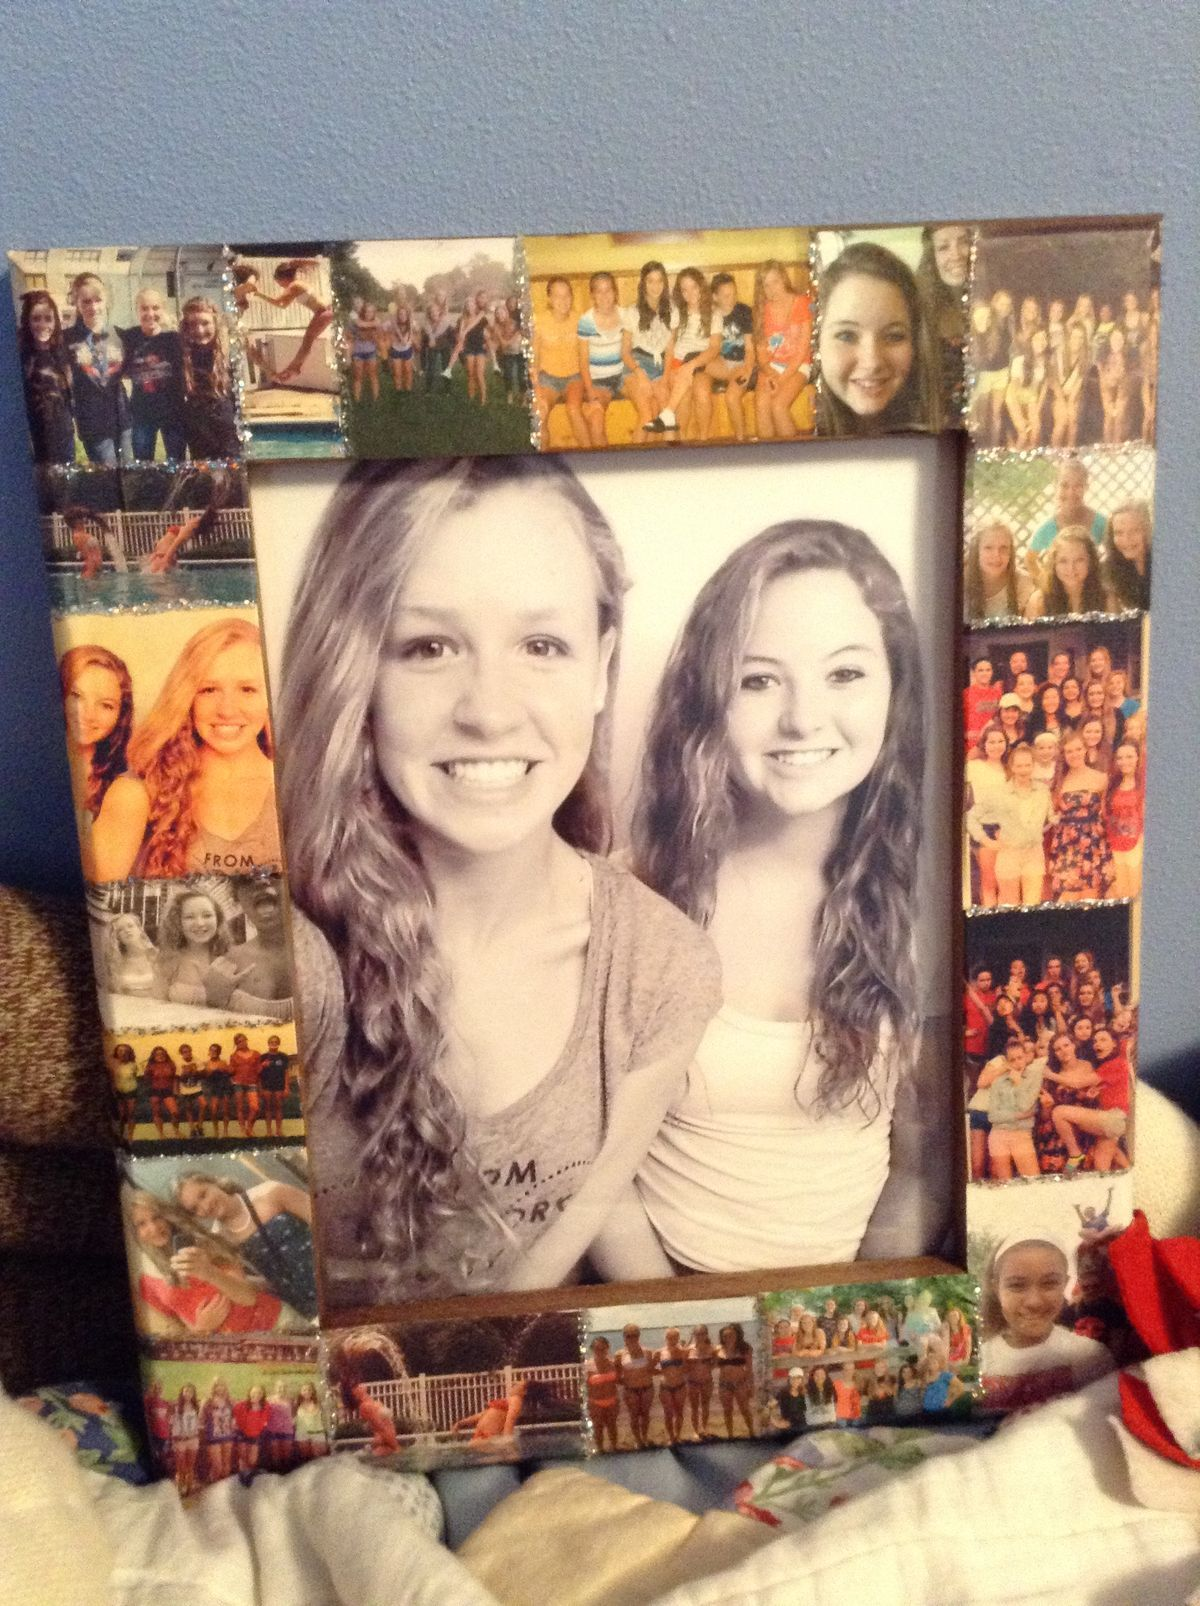 b7bbc768ee0 Best friend gift when going off to college!  pictures  college  bestfriends